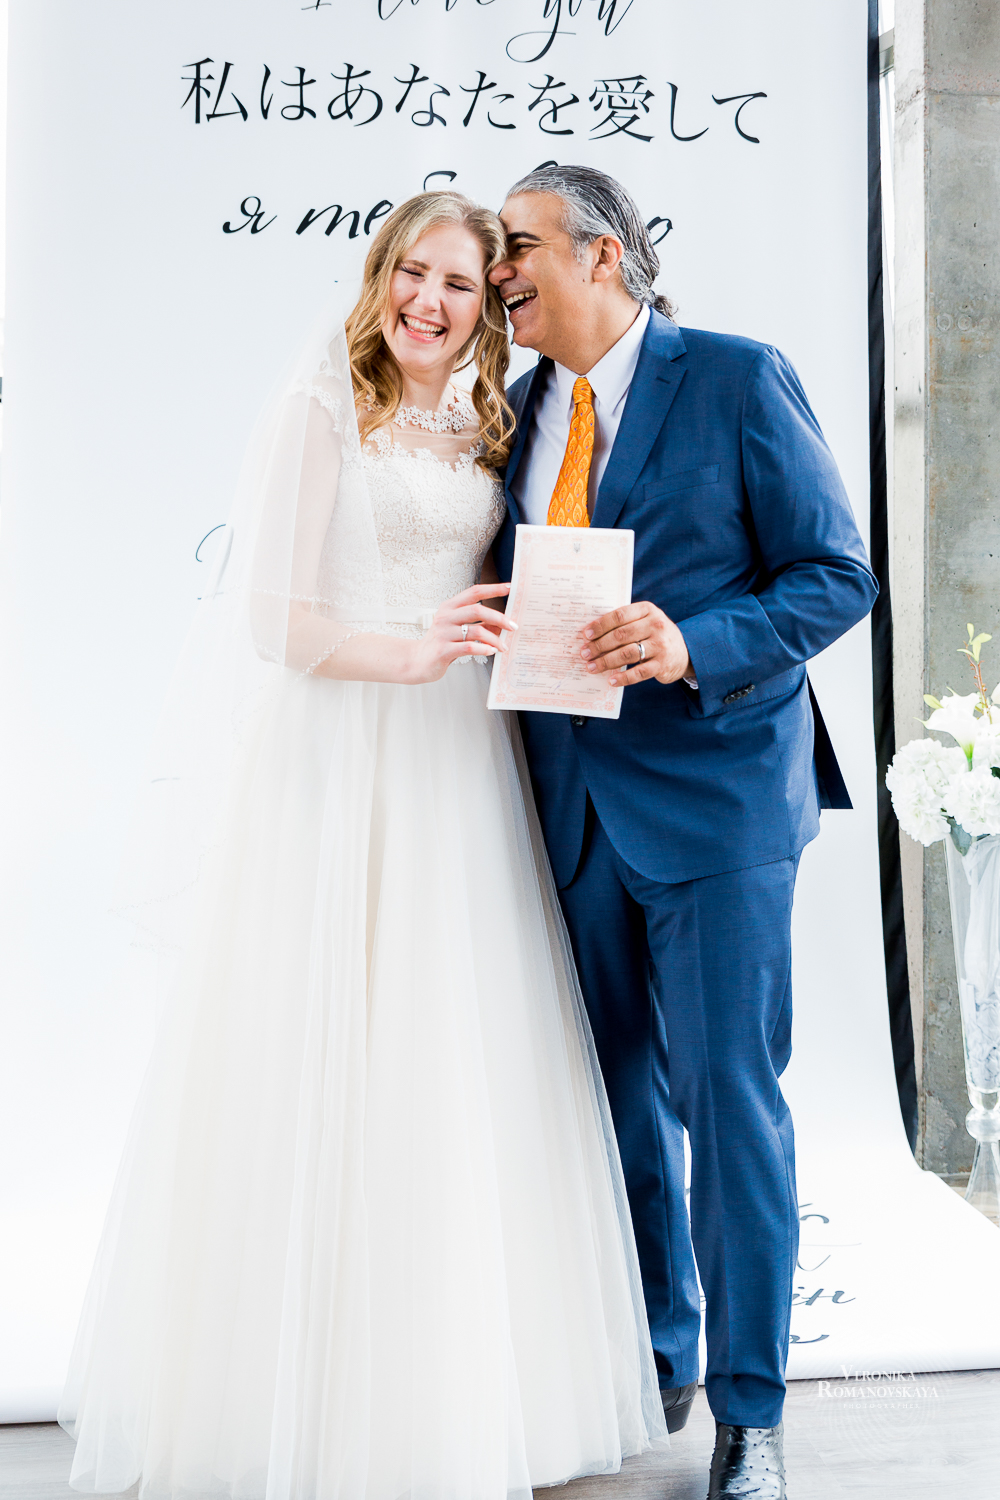 The Center for Registration and Rapid Issuance of Ukrainian-Specific Documents in Kiev, where in Kyiv to apply quickly and register a relationship, the express center for registration of relations and marriages in Kiev, the GOTOVO Documentation Center